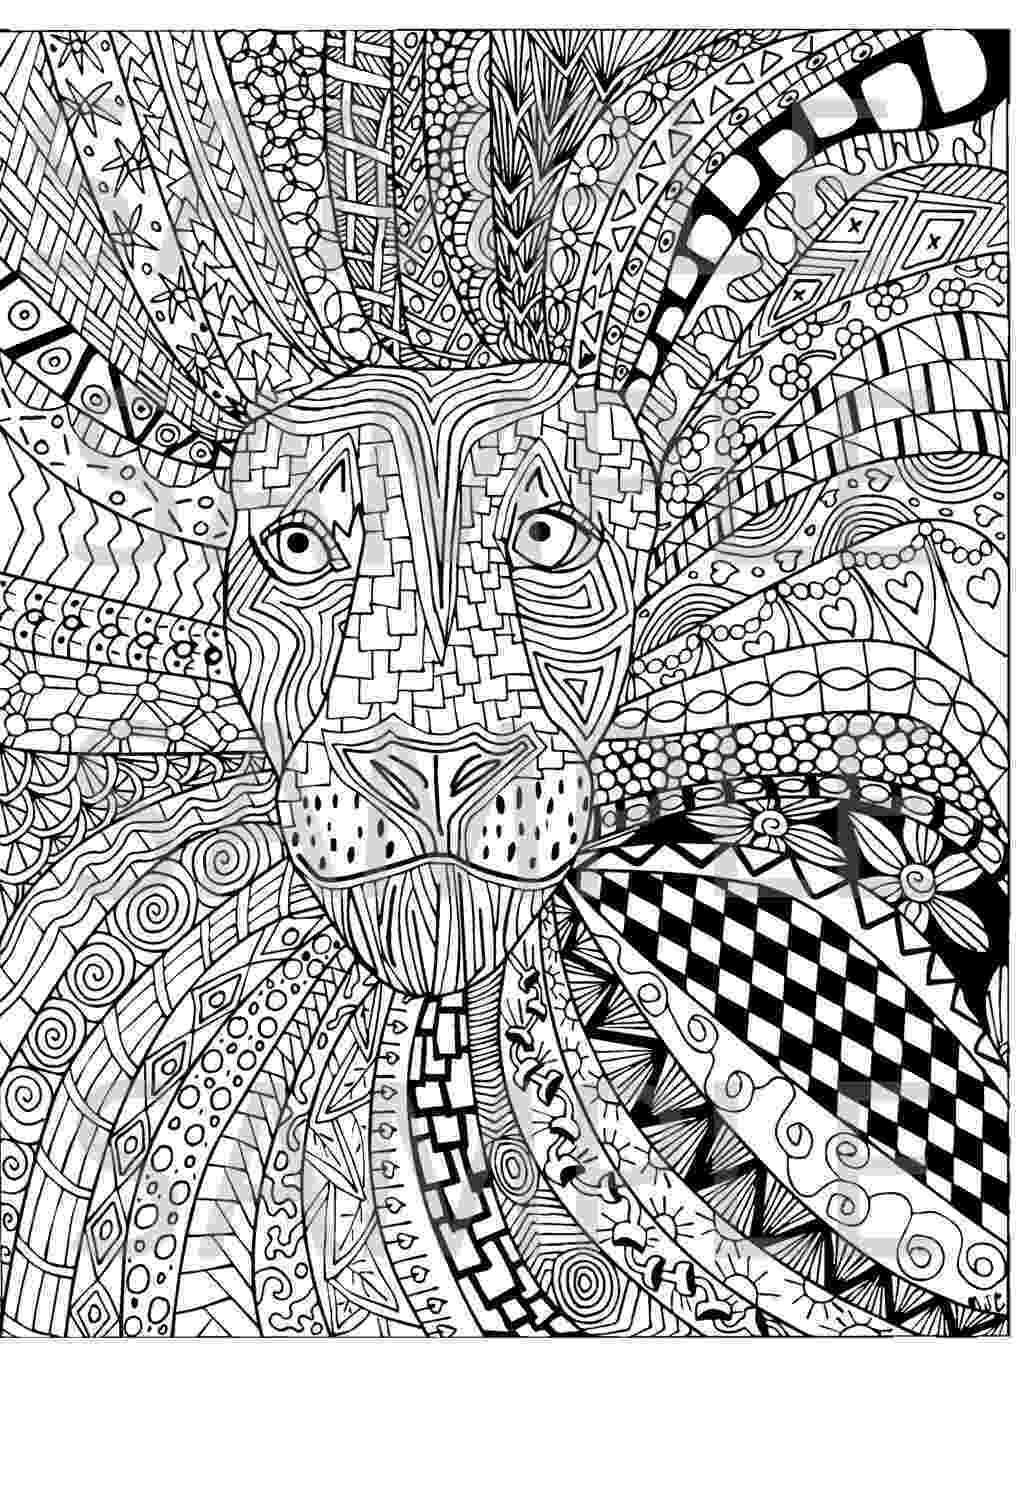 colouring pages zentangle kearney woman39s zentangle coloring book stems from her zentangle colouring pages